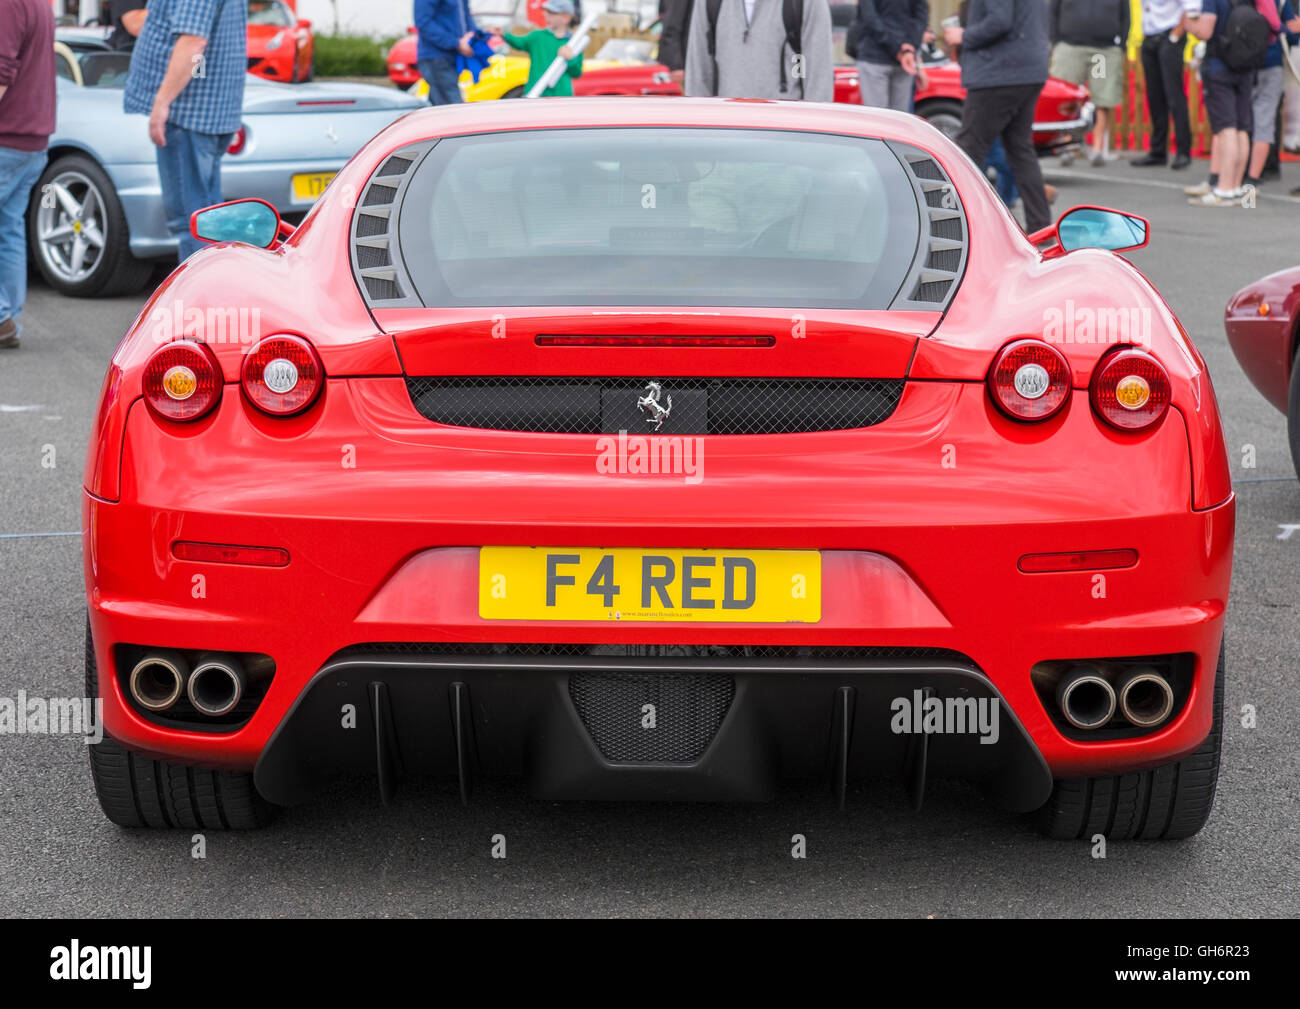 Personalised Registration Plate Stock Photos & Personalised ...